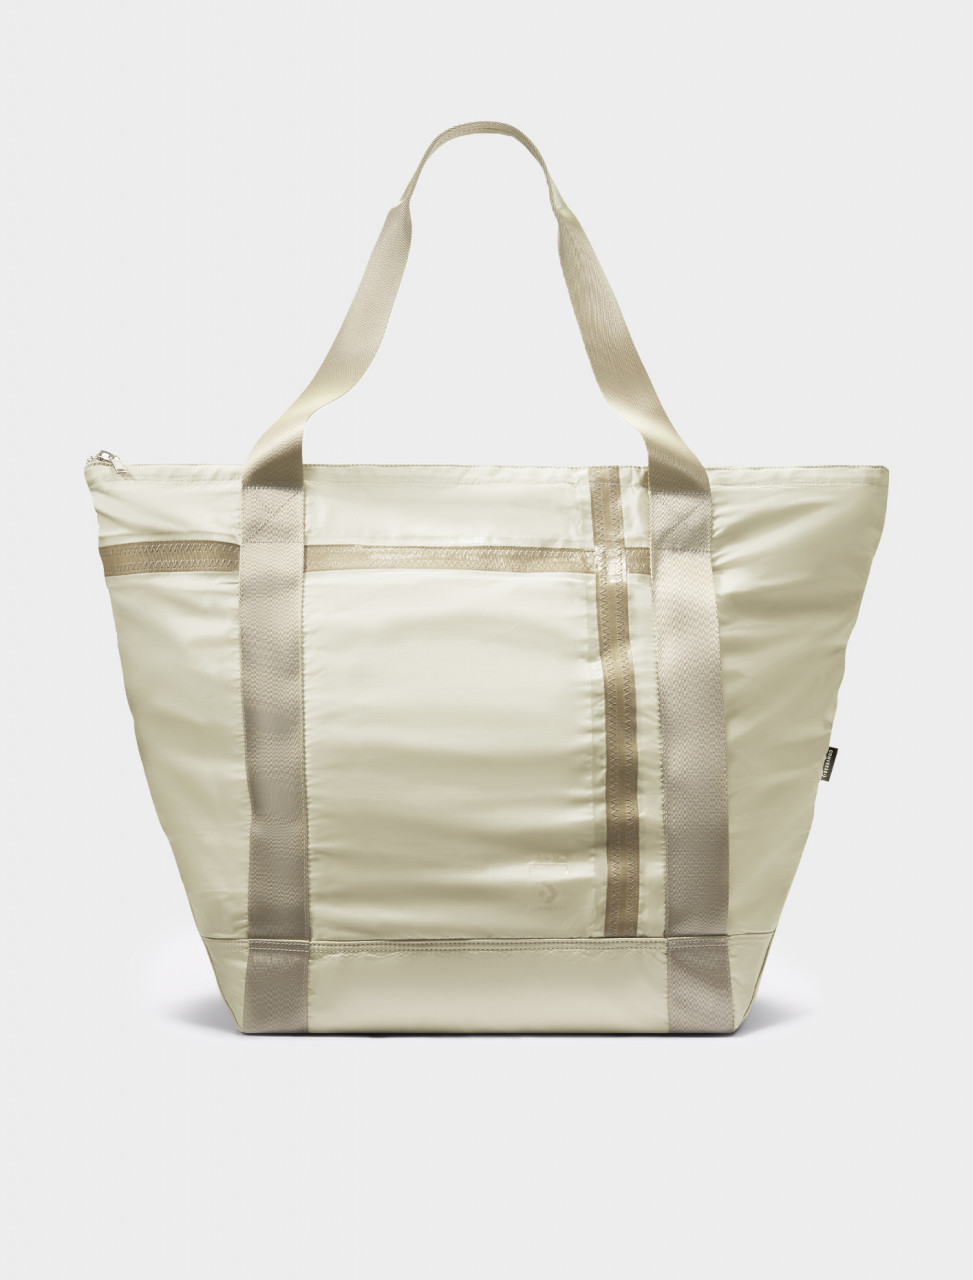 221-10019367-A01-281 CONVERSE X A COLD WALL TOTE BAG